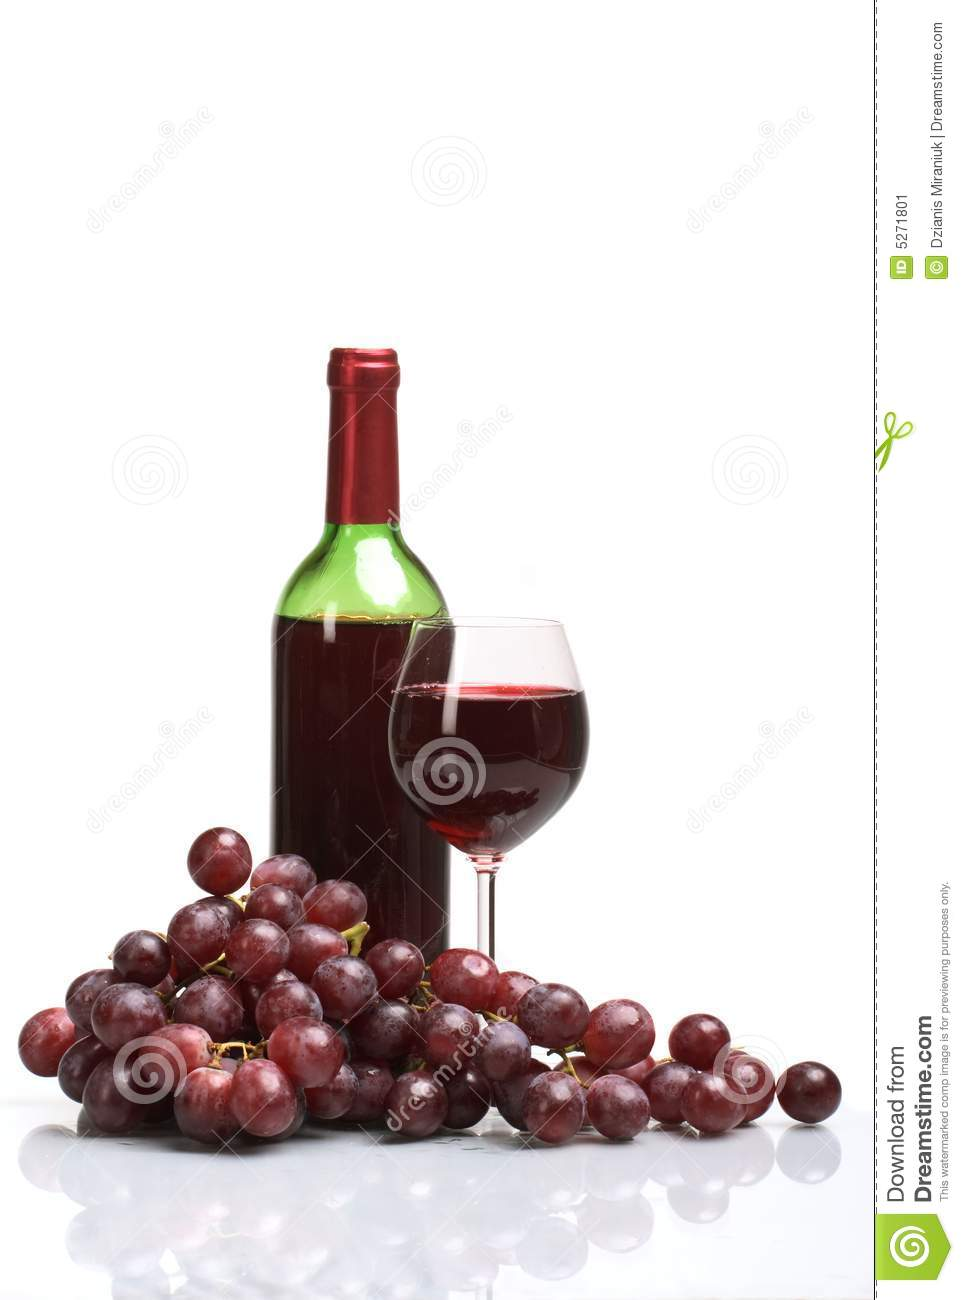 Bottle And Glass Of Wine On White Background Stock Image